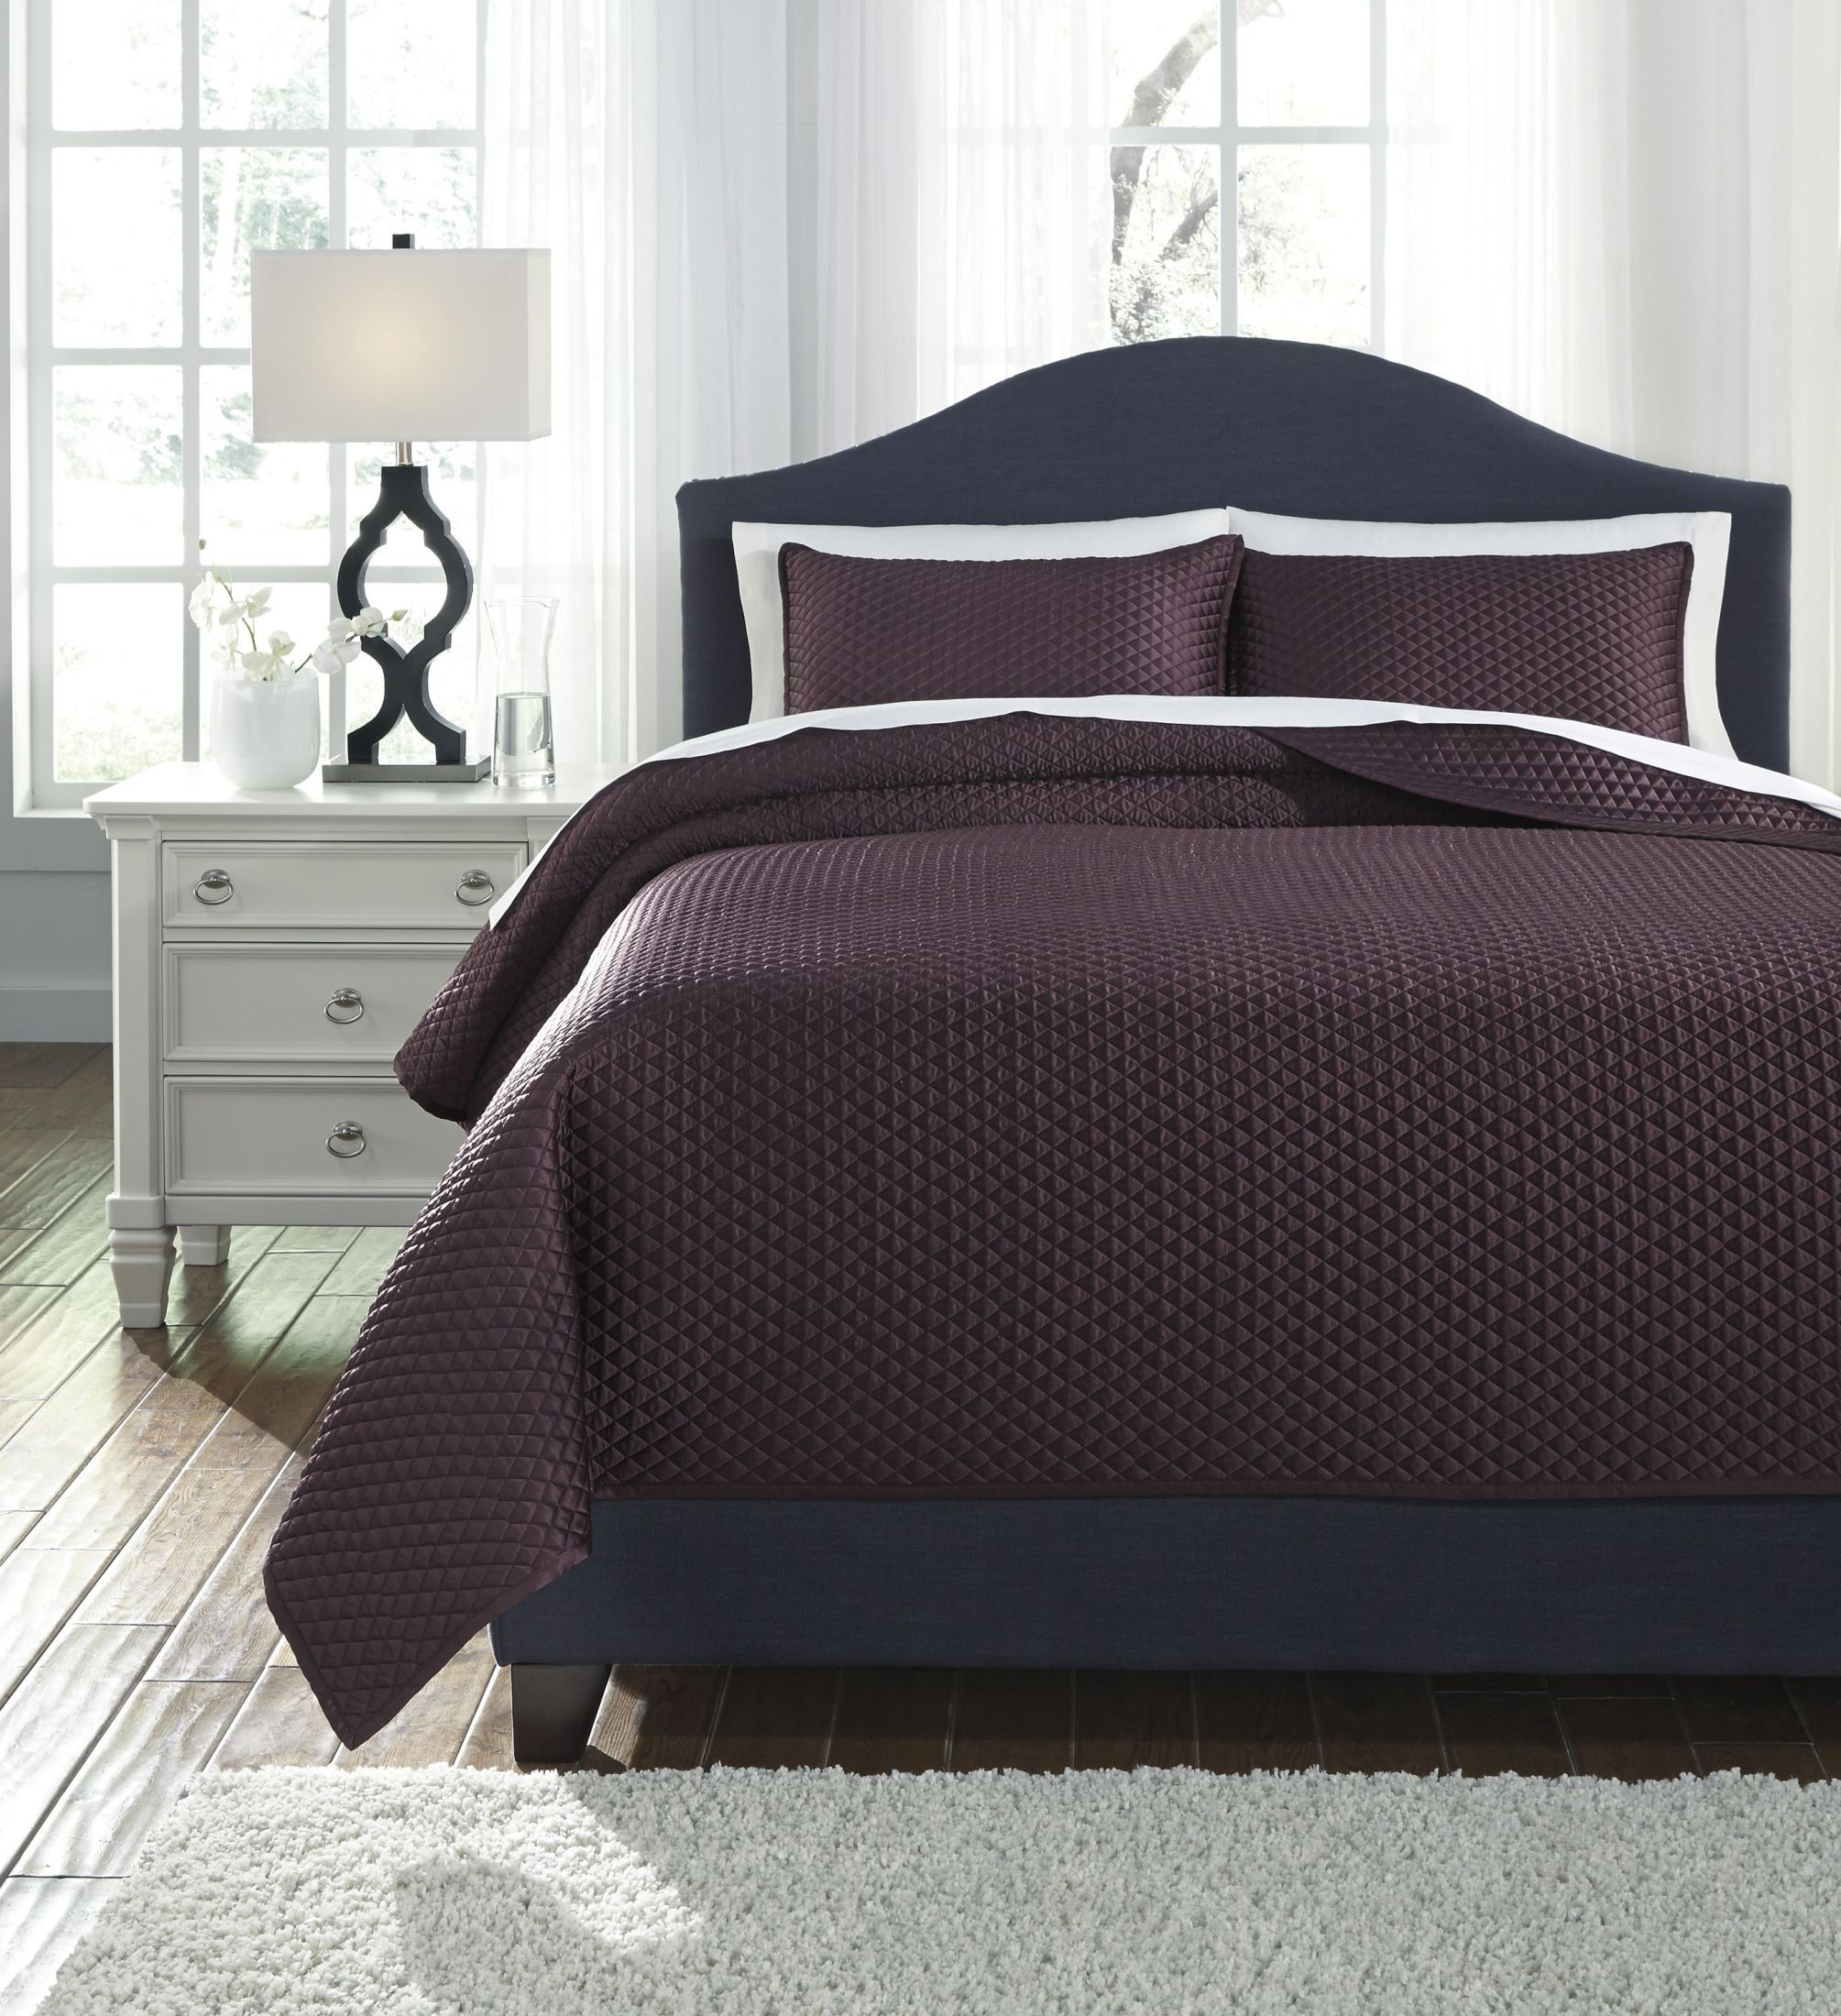 bedding super sets white black cabinet and pretty plum quilt set cotton lime king covers silver of green deep sheets full inserts duvet bedroom winsome mint nice purple duvets comforters twin dark light walmart grey cover comforter lilac size